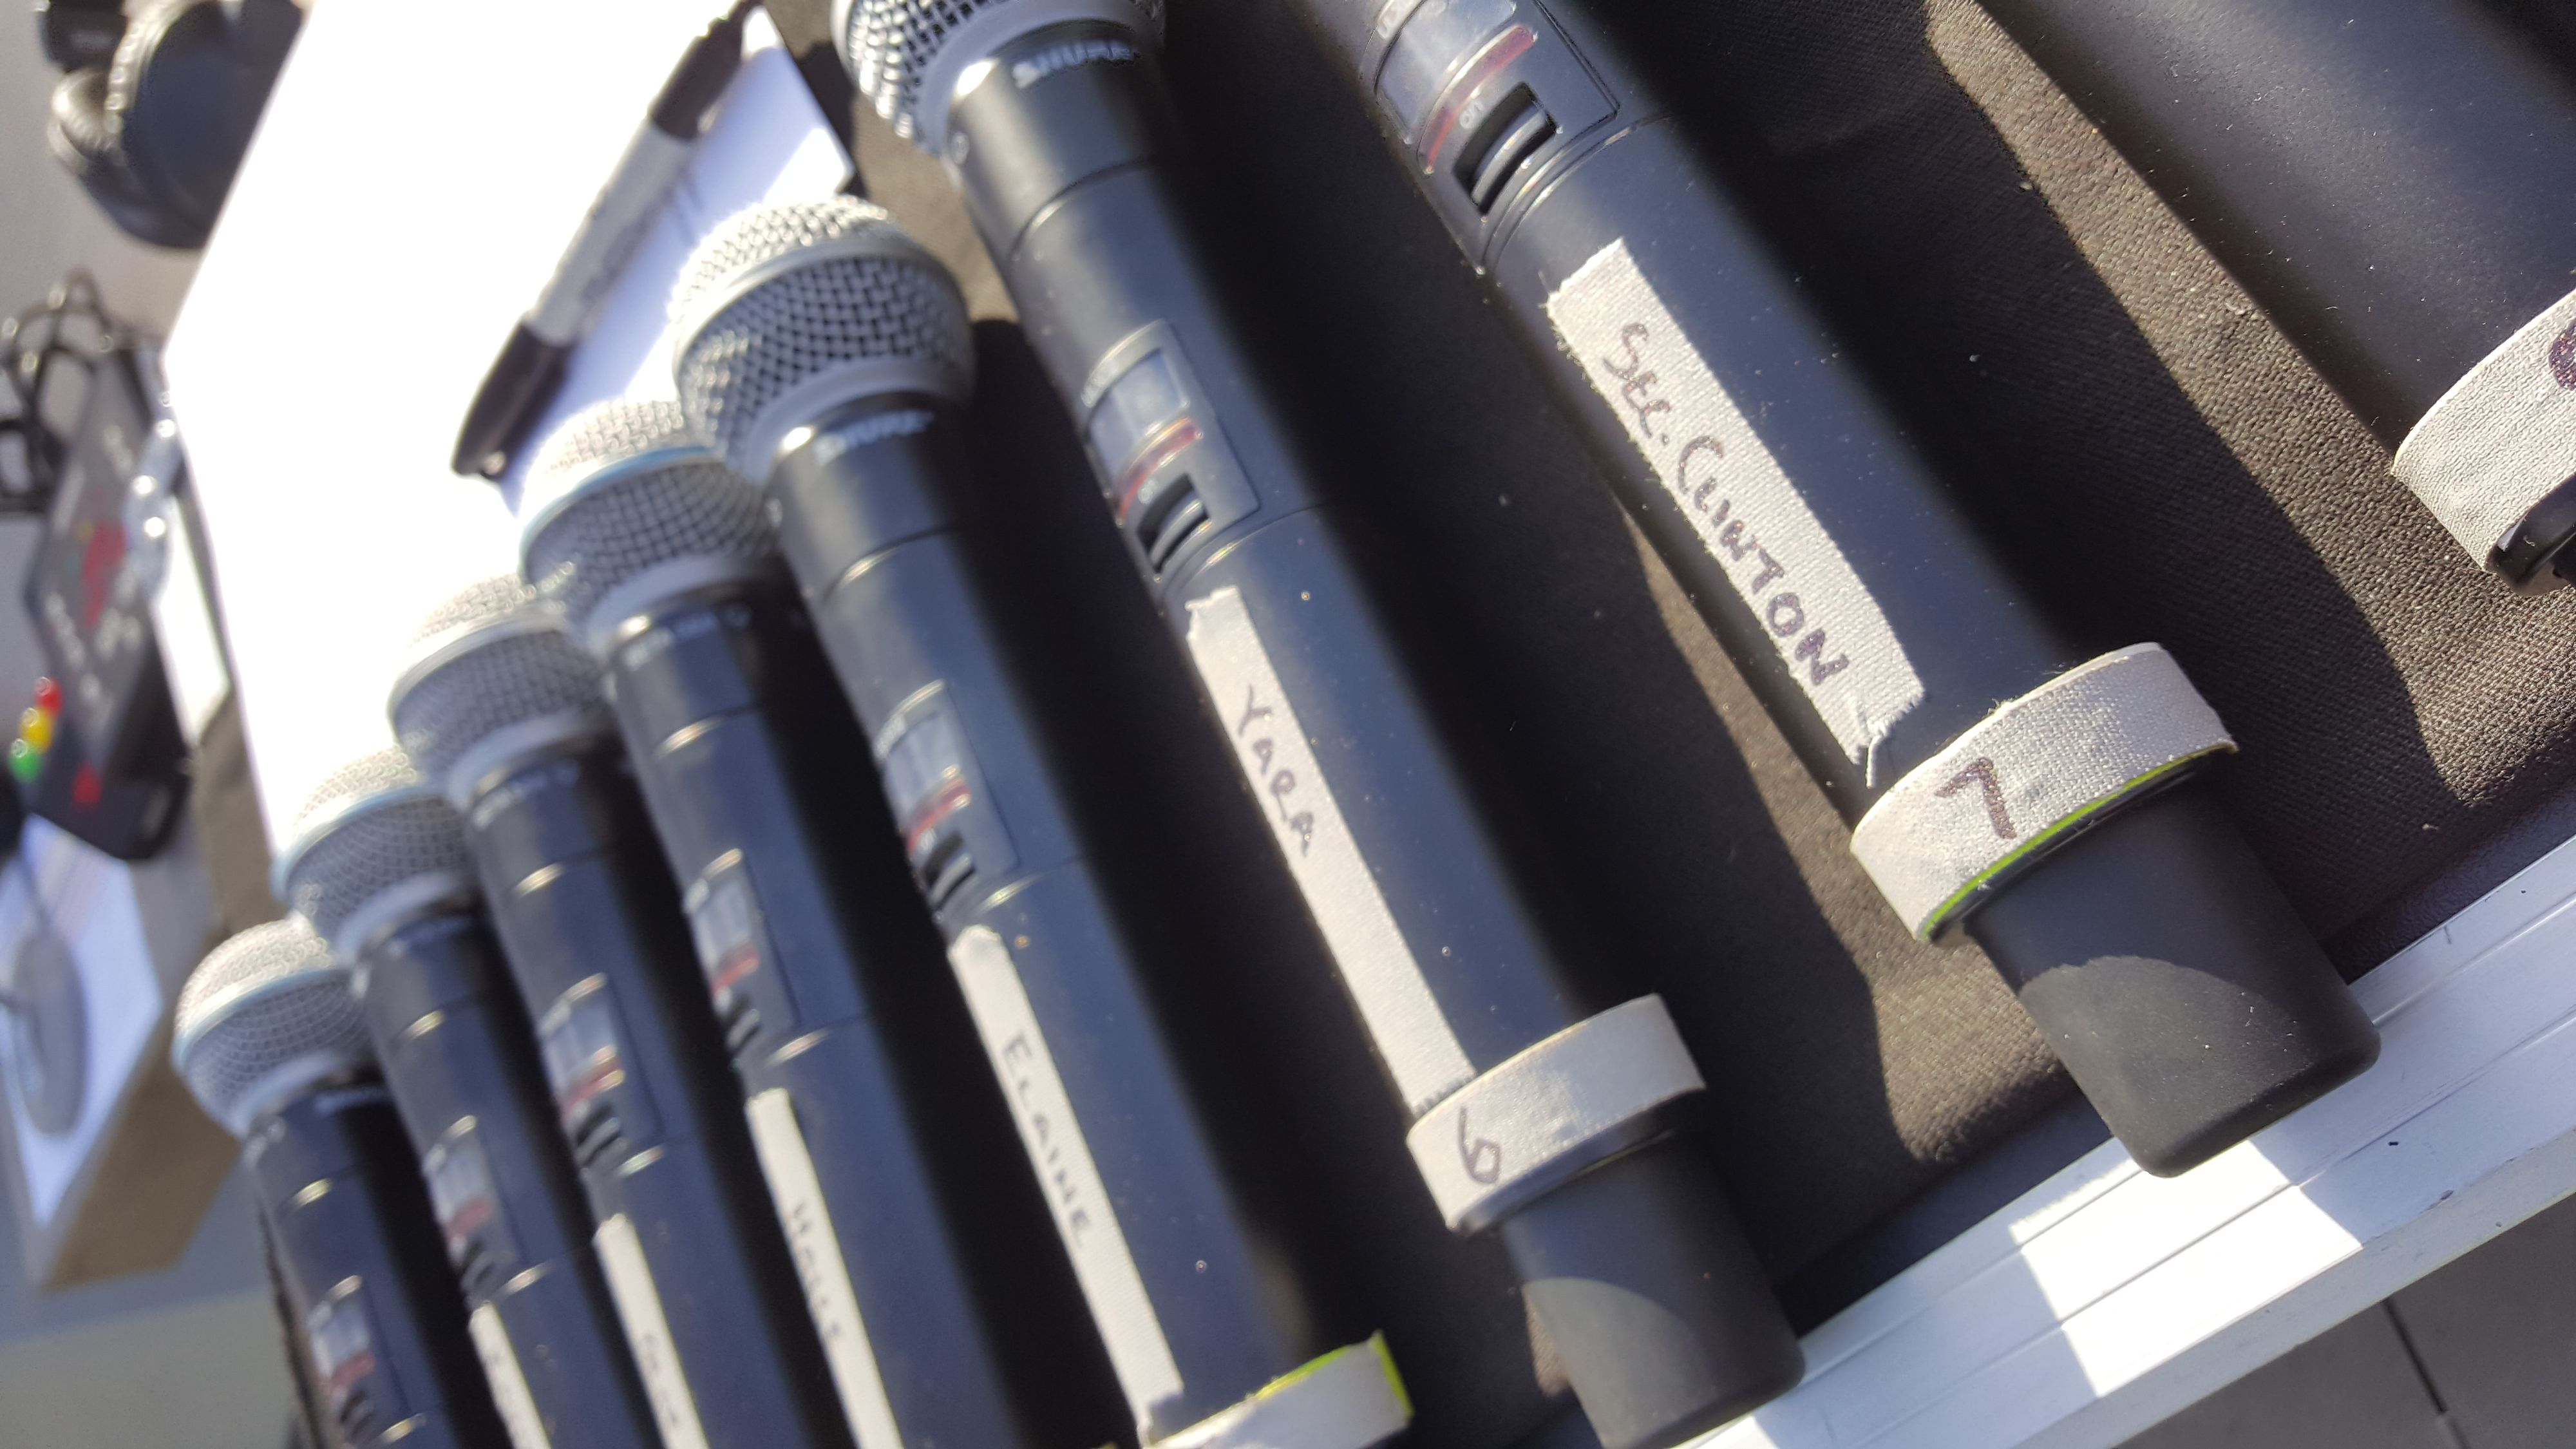 Close up of Shure Wireless Microphones